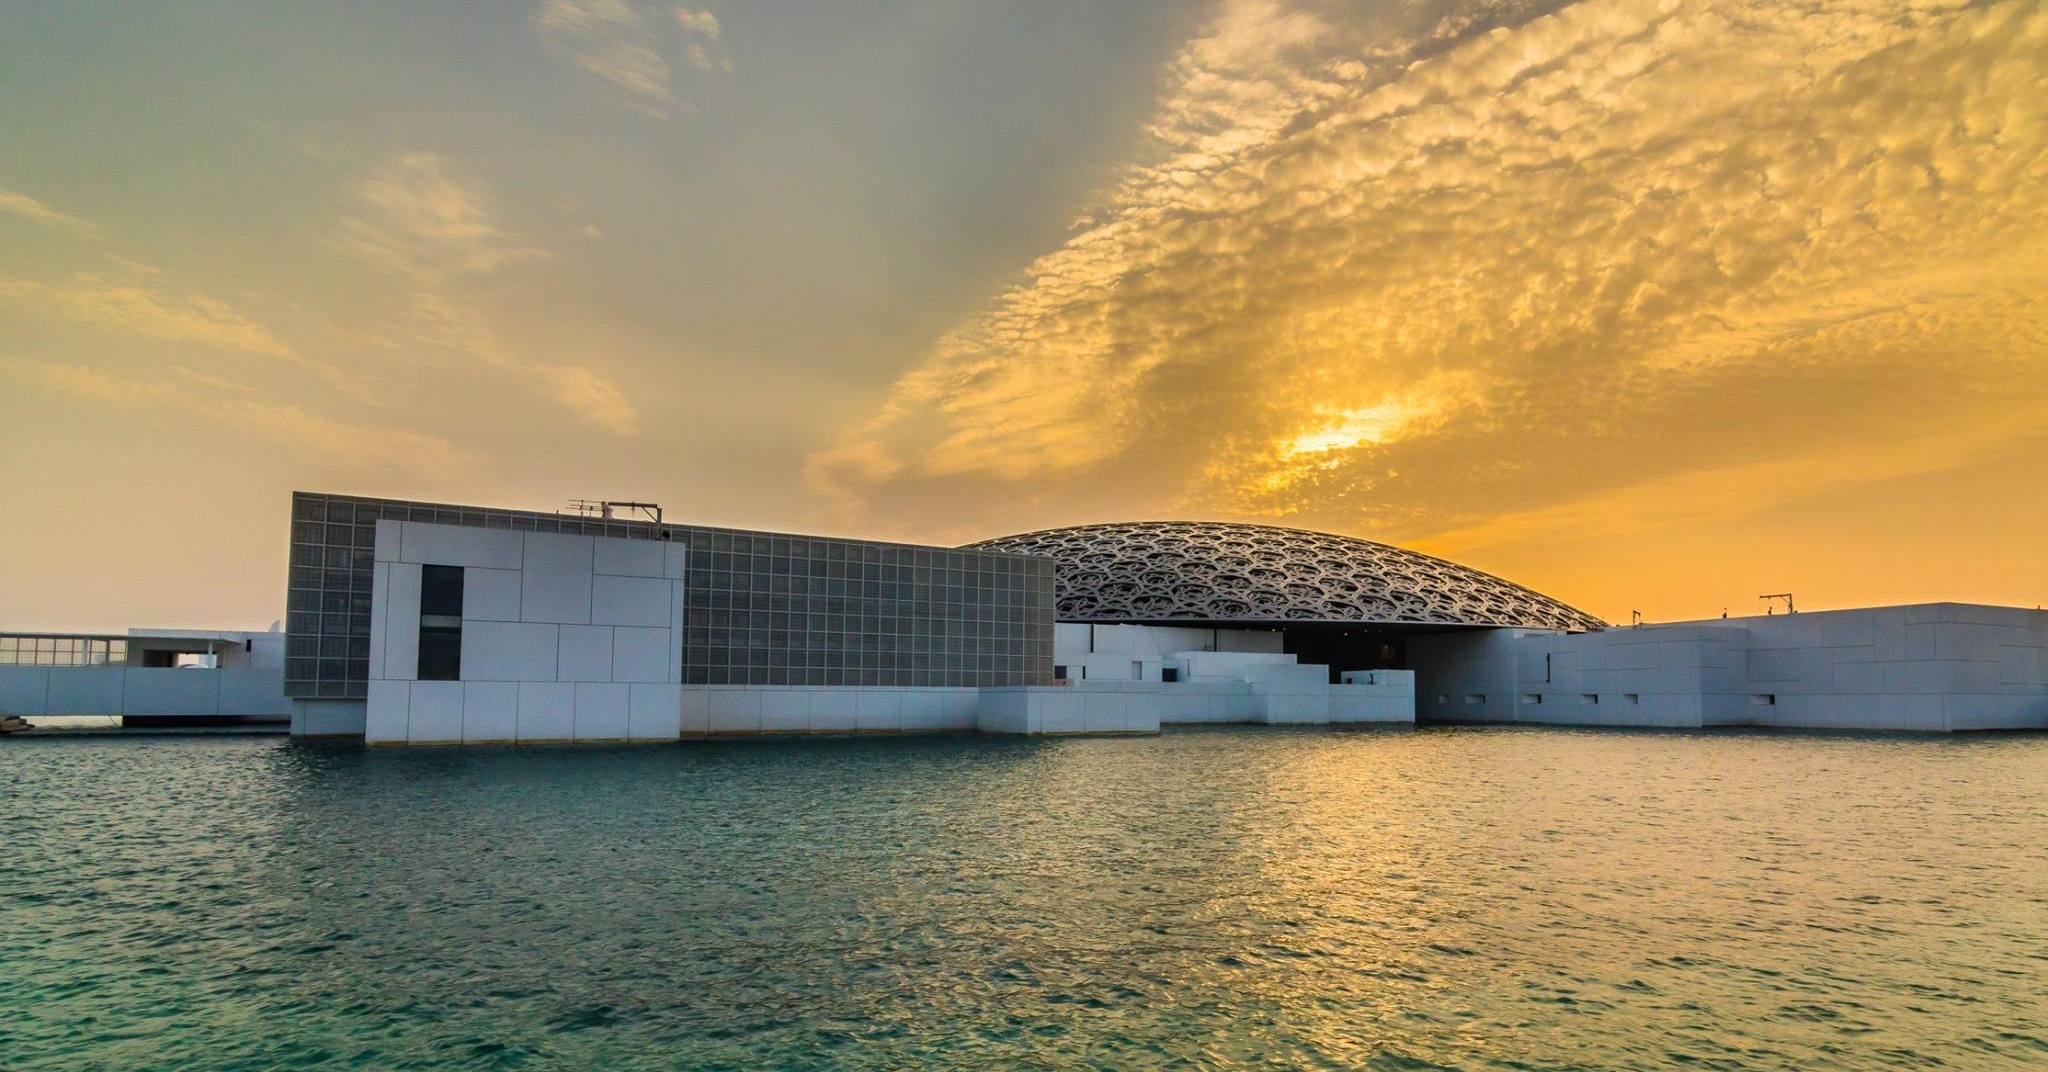 Sunset shot at Louvre Abu Dhabi museum